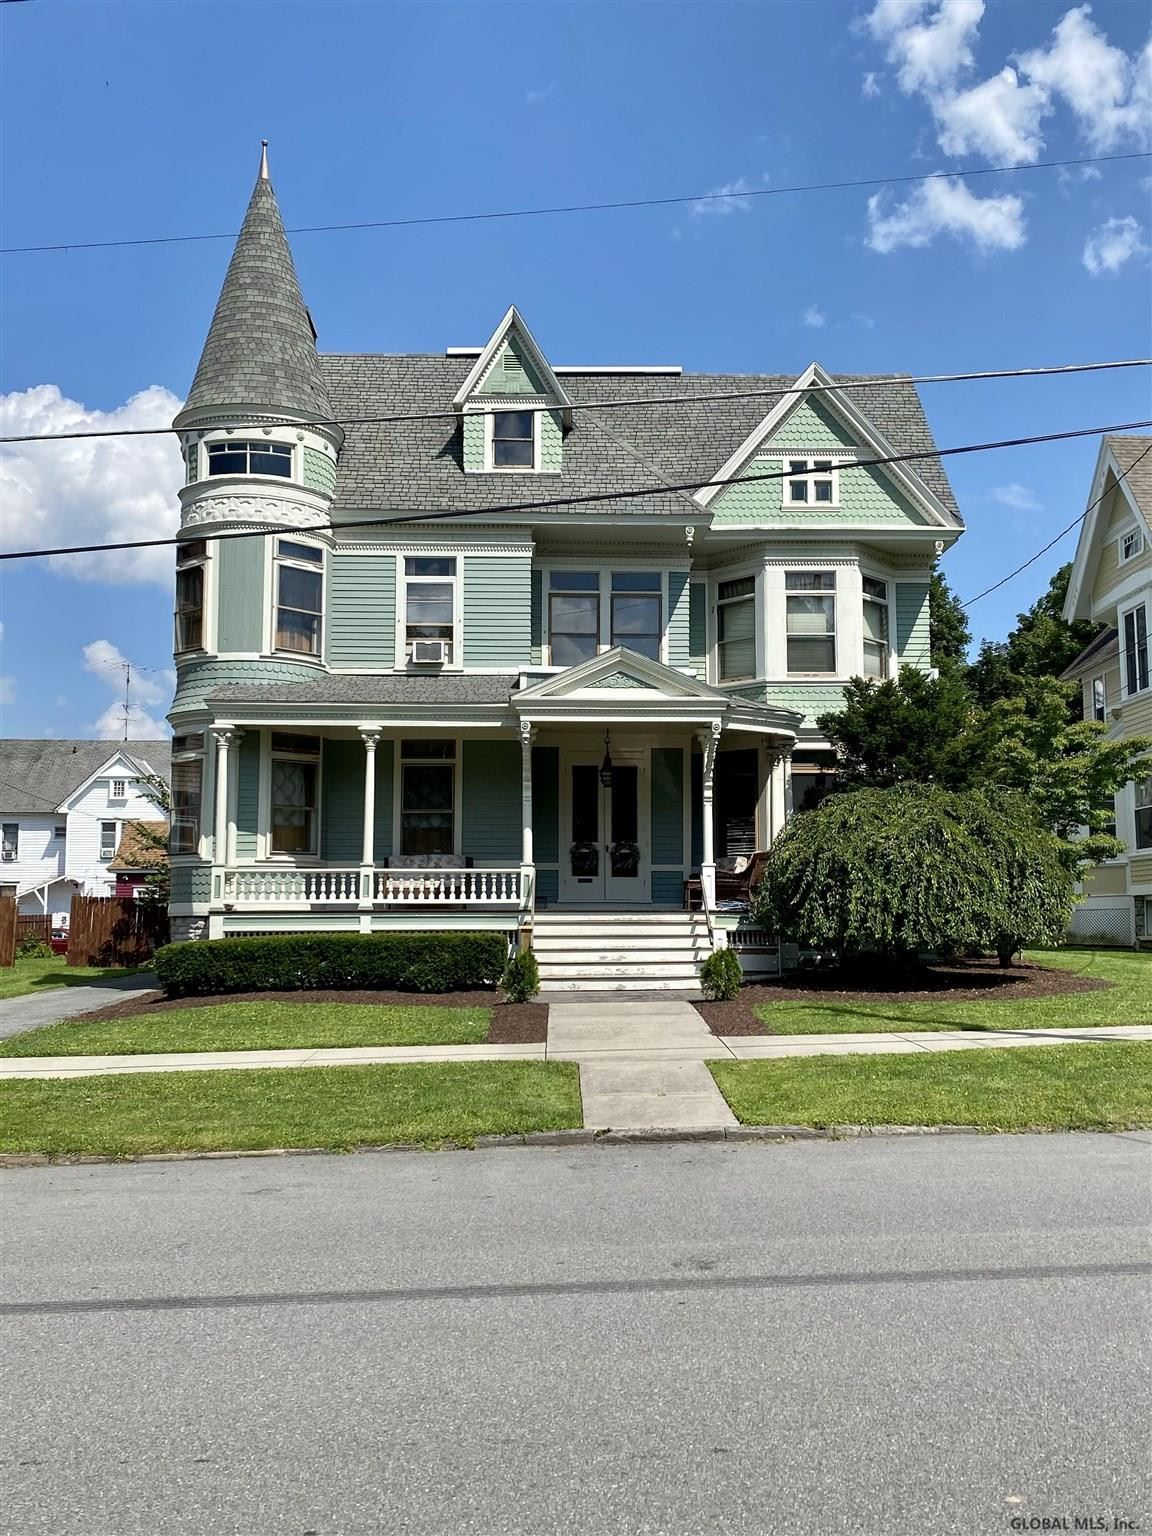 102 SOUTH WILLIAM ST, Johnstown, NY 12095 - MLS#: 202125630